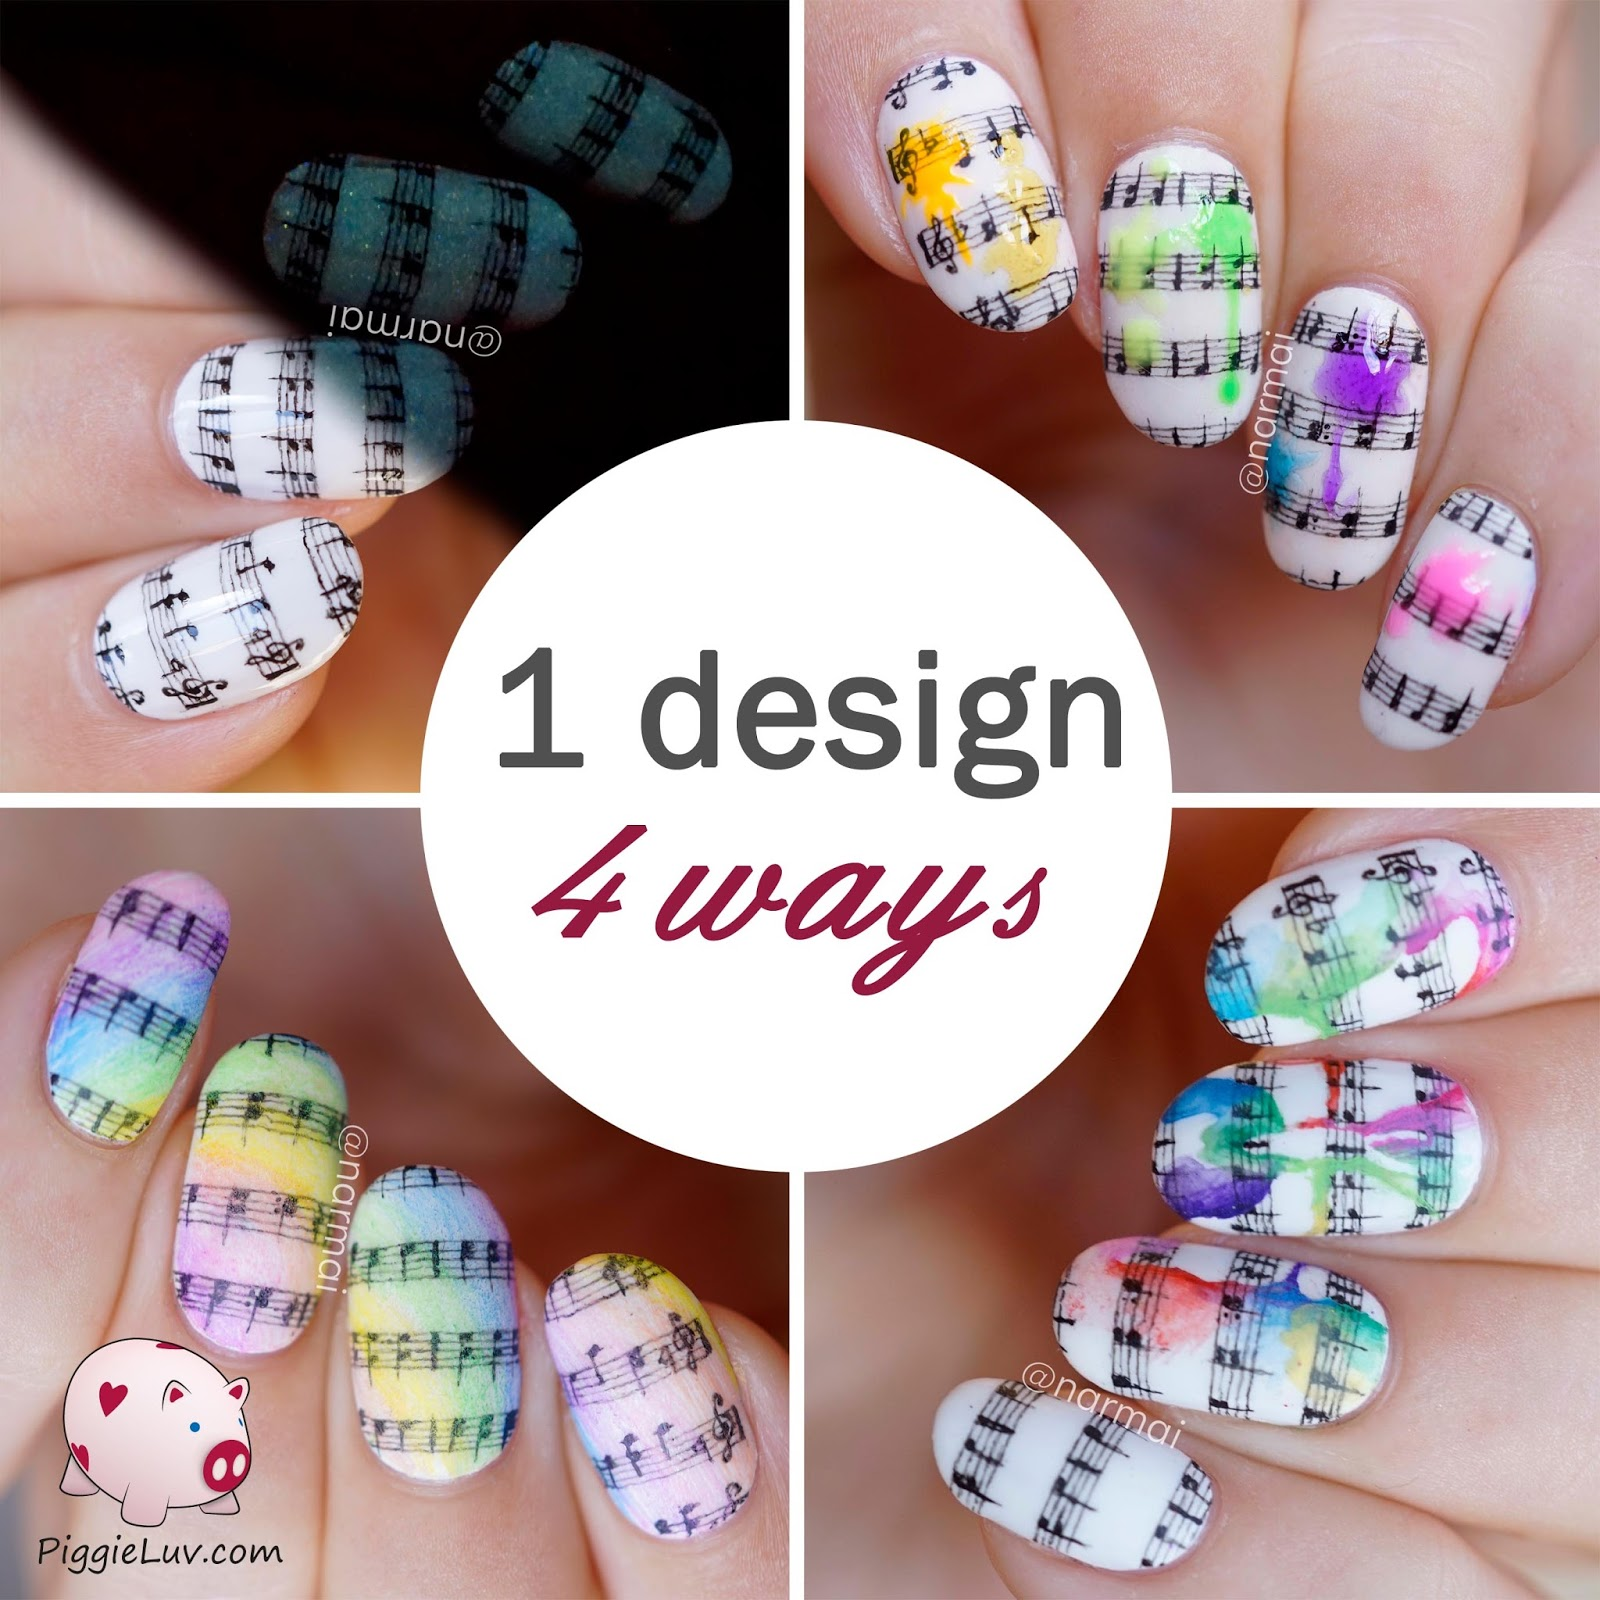 Piggieluv 1 nail art design 4 ways video tutorial i have these four ways to wear one single nail art design and you get to tell me which one you like the most d theres also a video tutorial prinsesfo Gallery